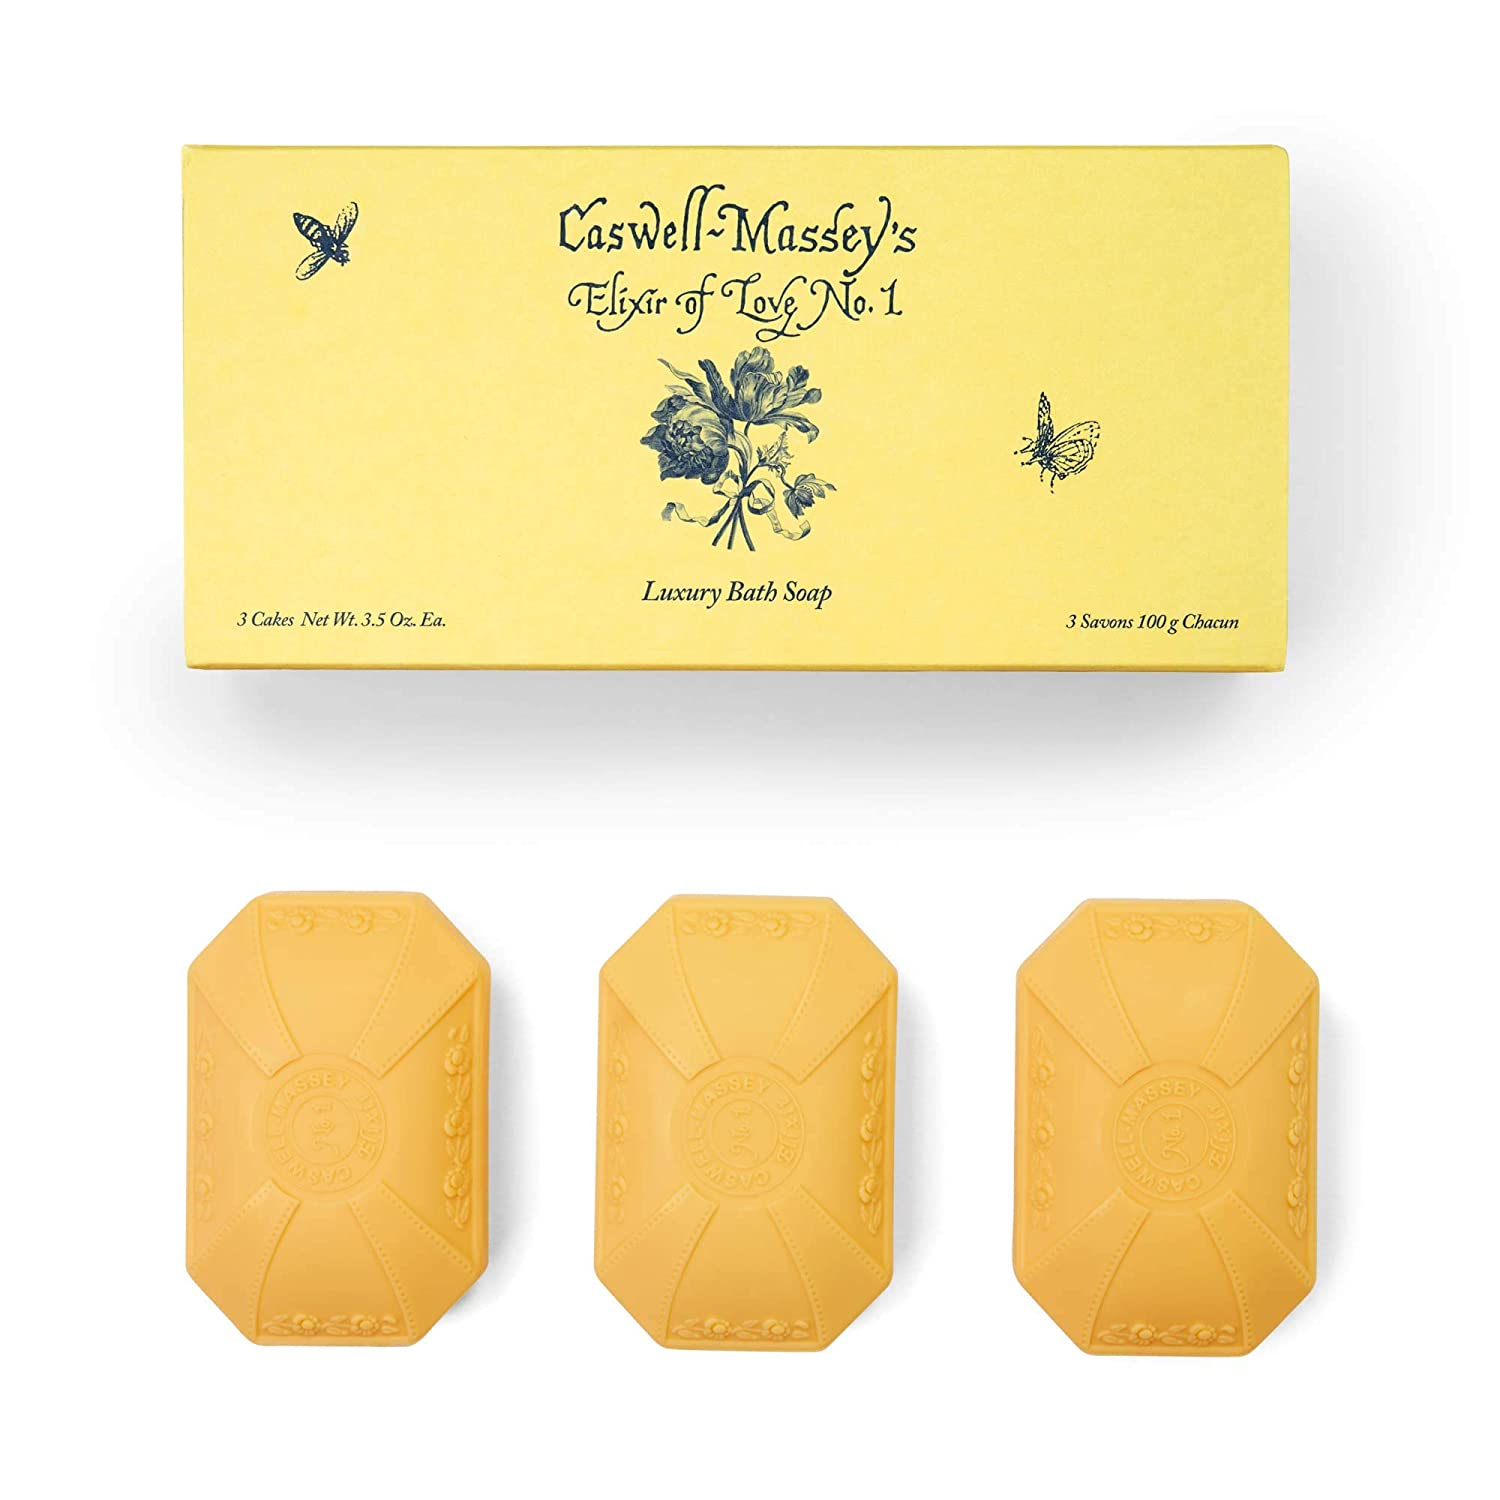 Caswell-Massey Elixir of Love No. 1 Scented Luxury Bath Soap Bar Set – 3 Bars of Soap